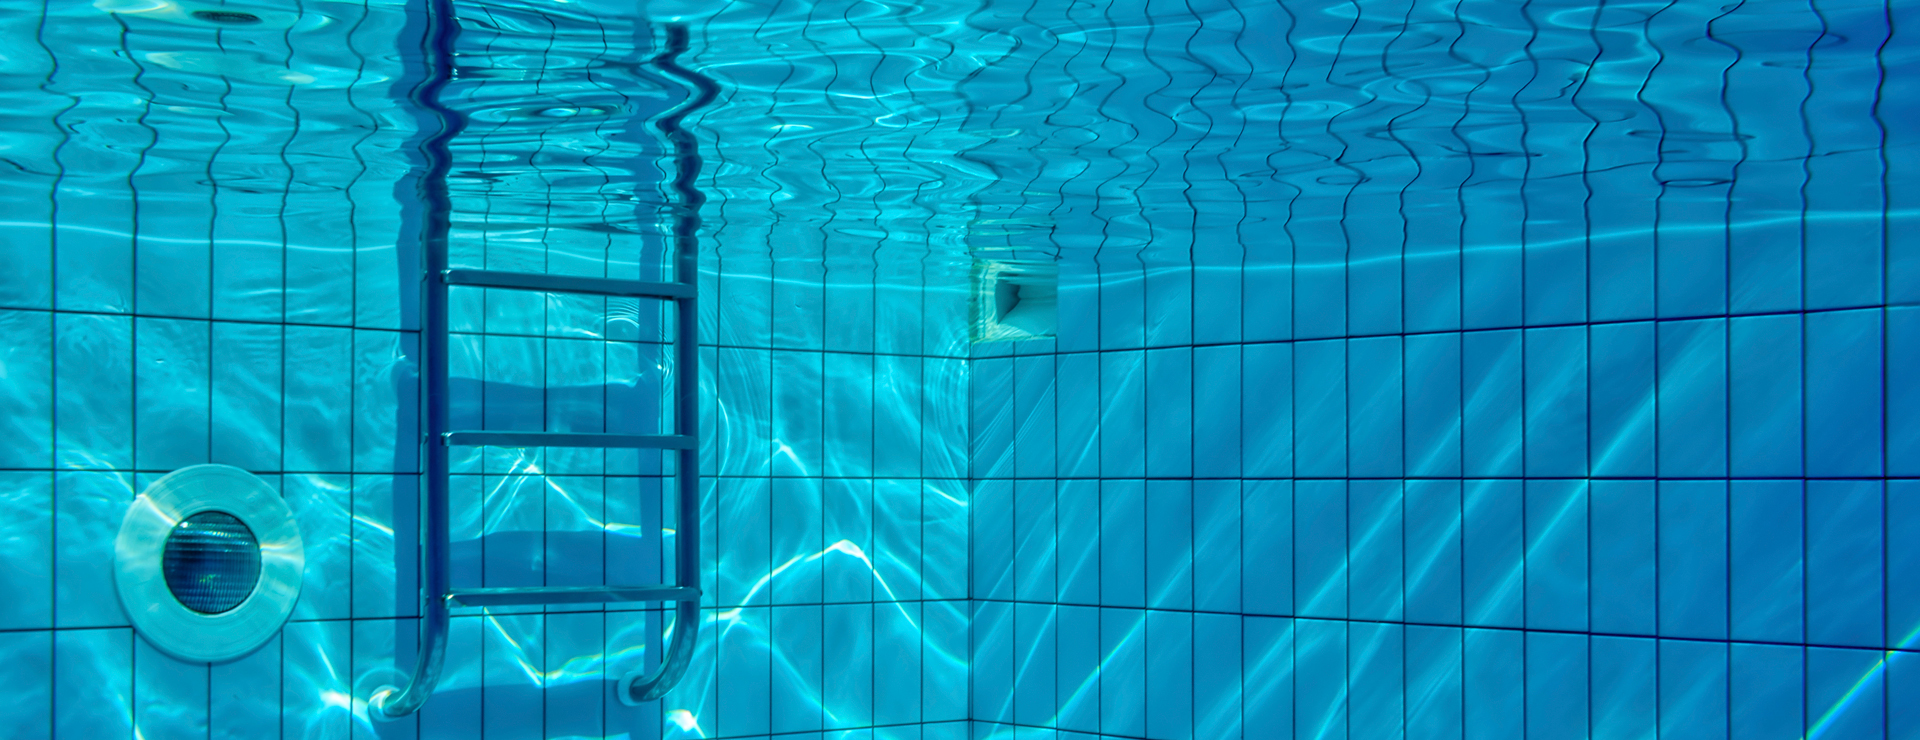 Swimming Pool Accident Attorney San Antonio Texas